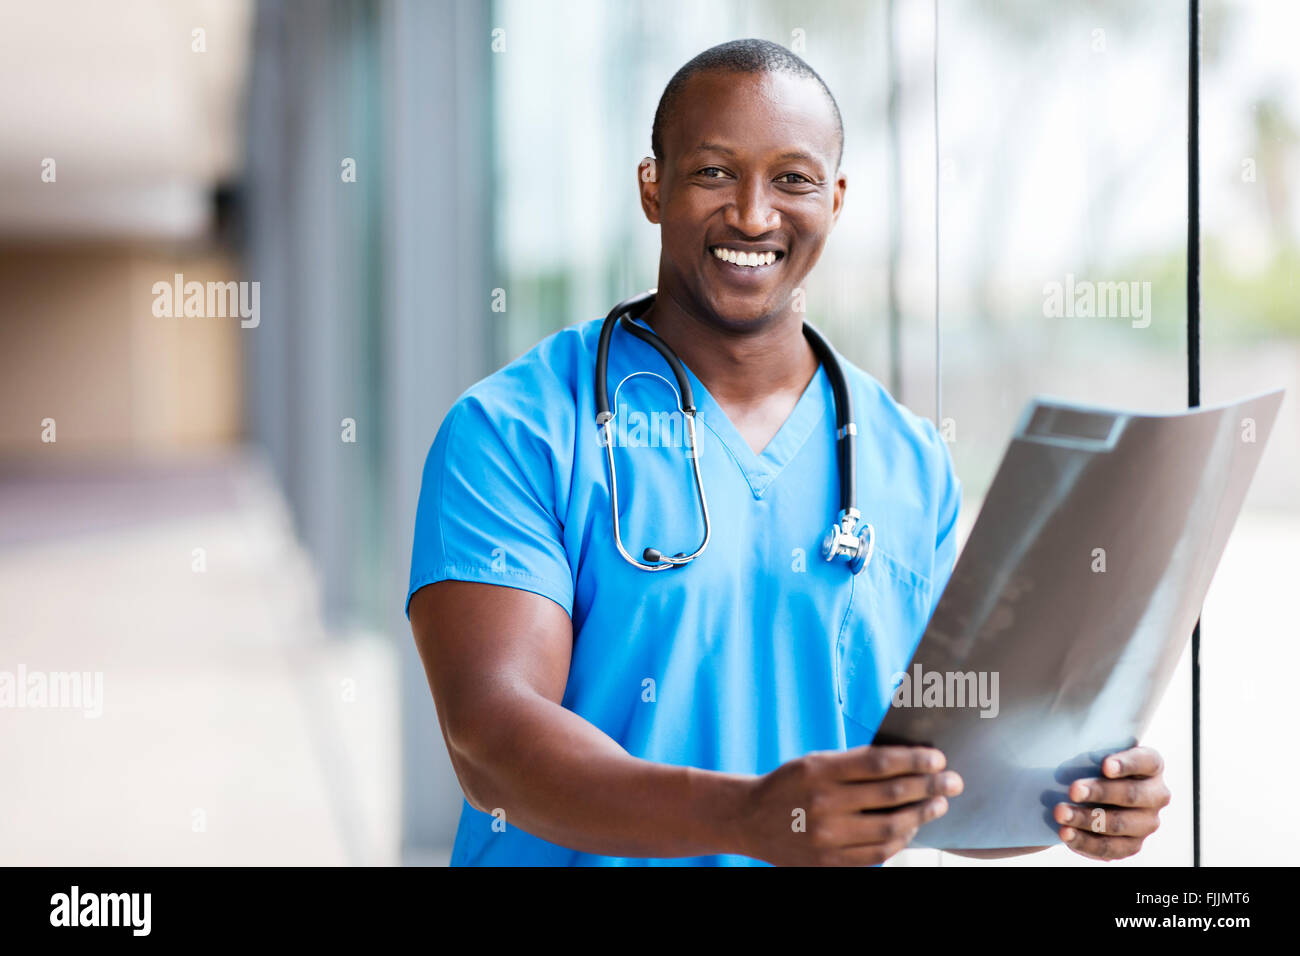 professional African medical doctor holding CT scan - Stock Image